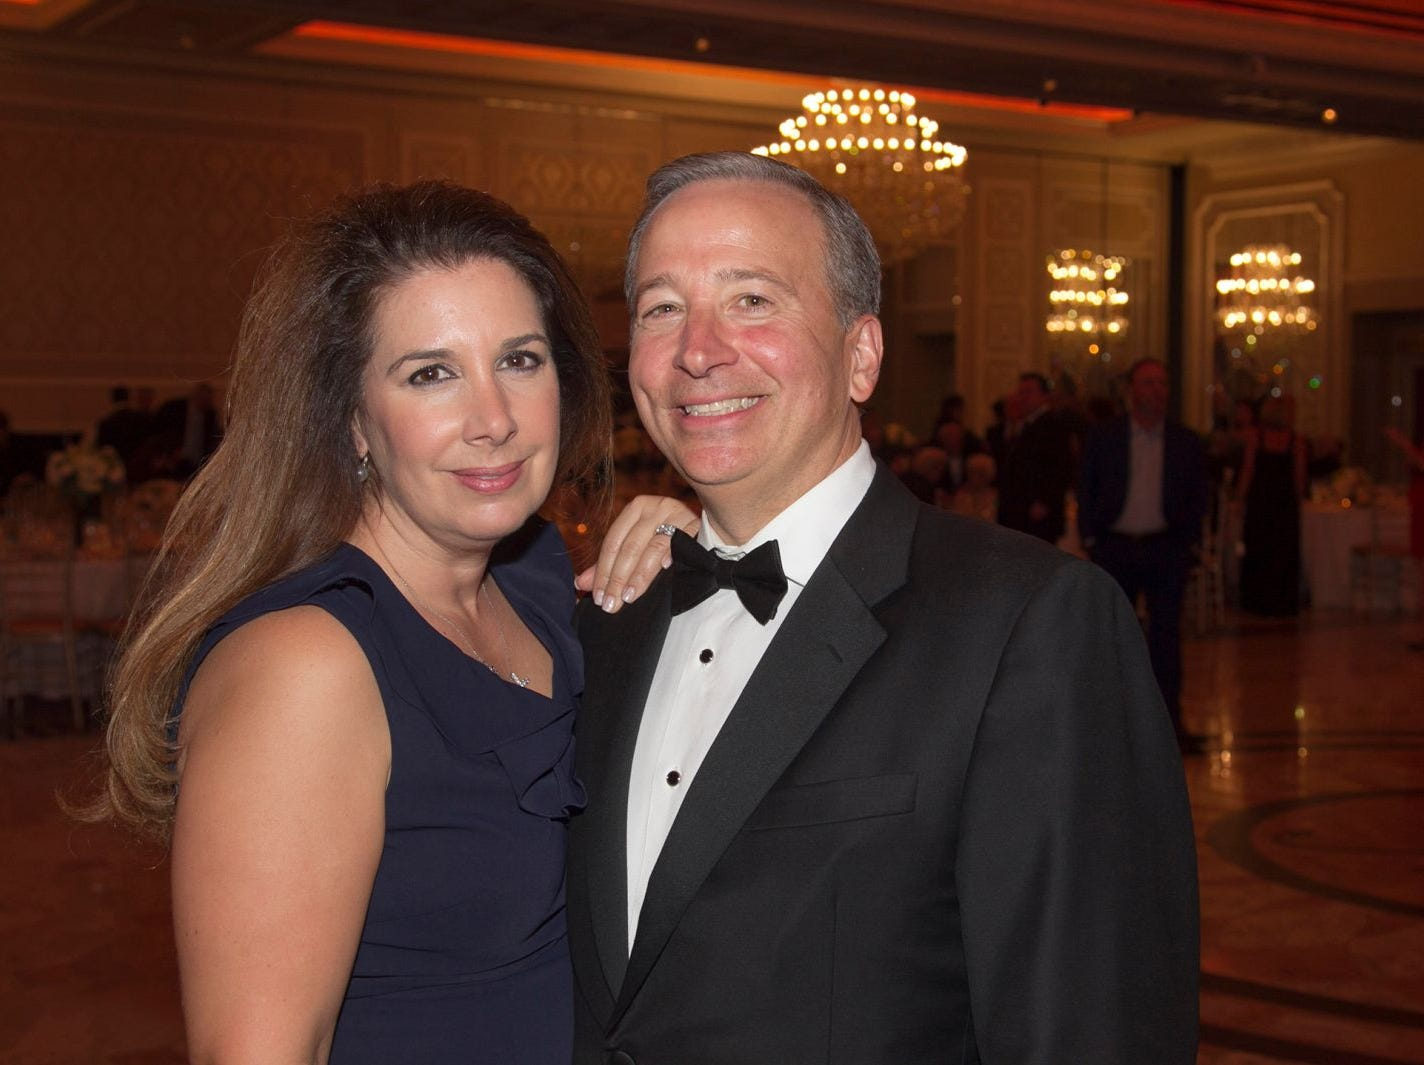 Phil and Annistsa Phillion. Saint John the Theologian 50th Anniversary gala Dinner at The Venetian in Garfield. 10/04/2018